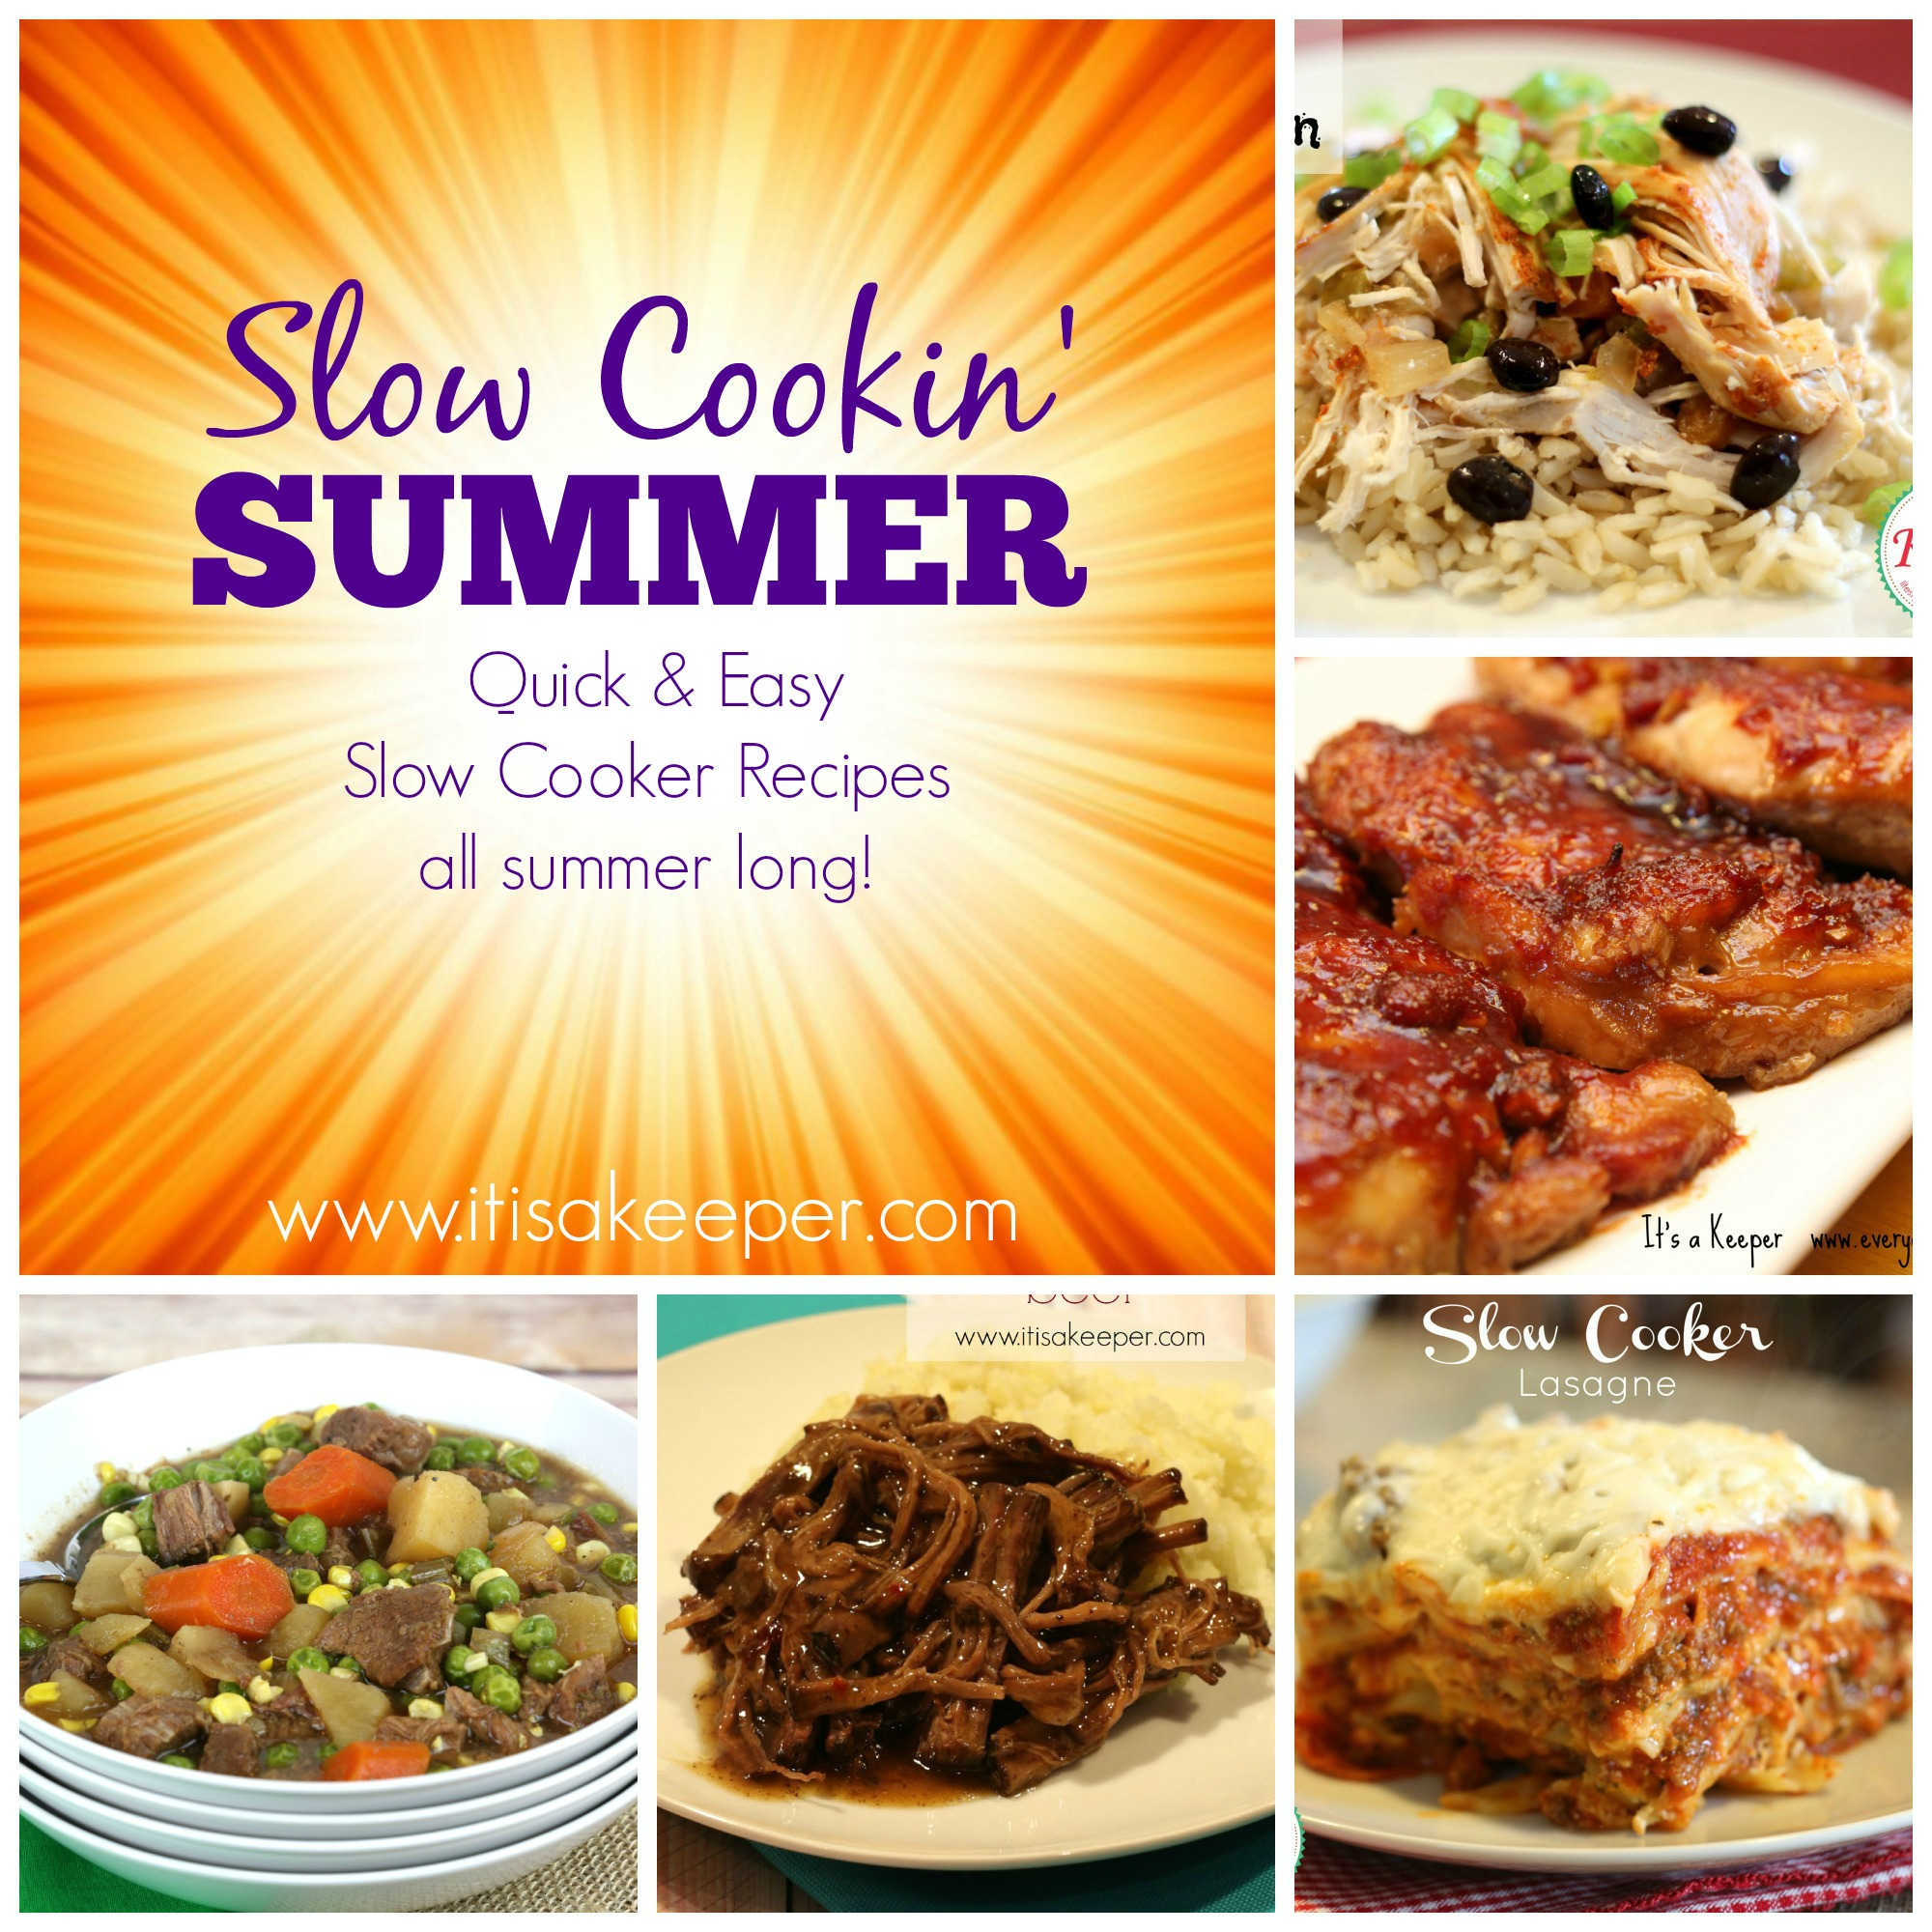 Regaling Slow Cookin Summer Collage Final Summer Slow Cooker Recipes Australia Summer Slow Cooker Recipes Nz nice food Summer Slow Cooker Recipes